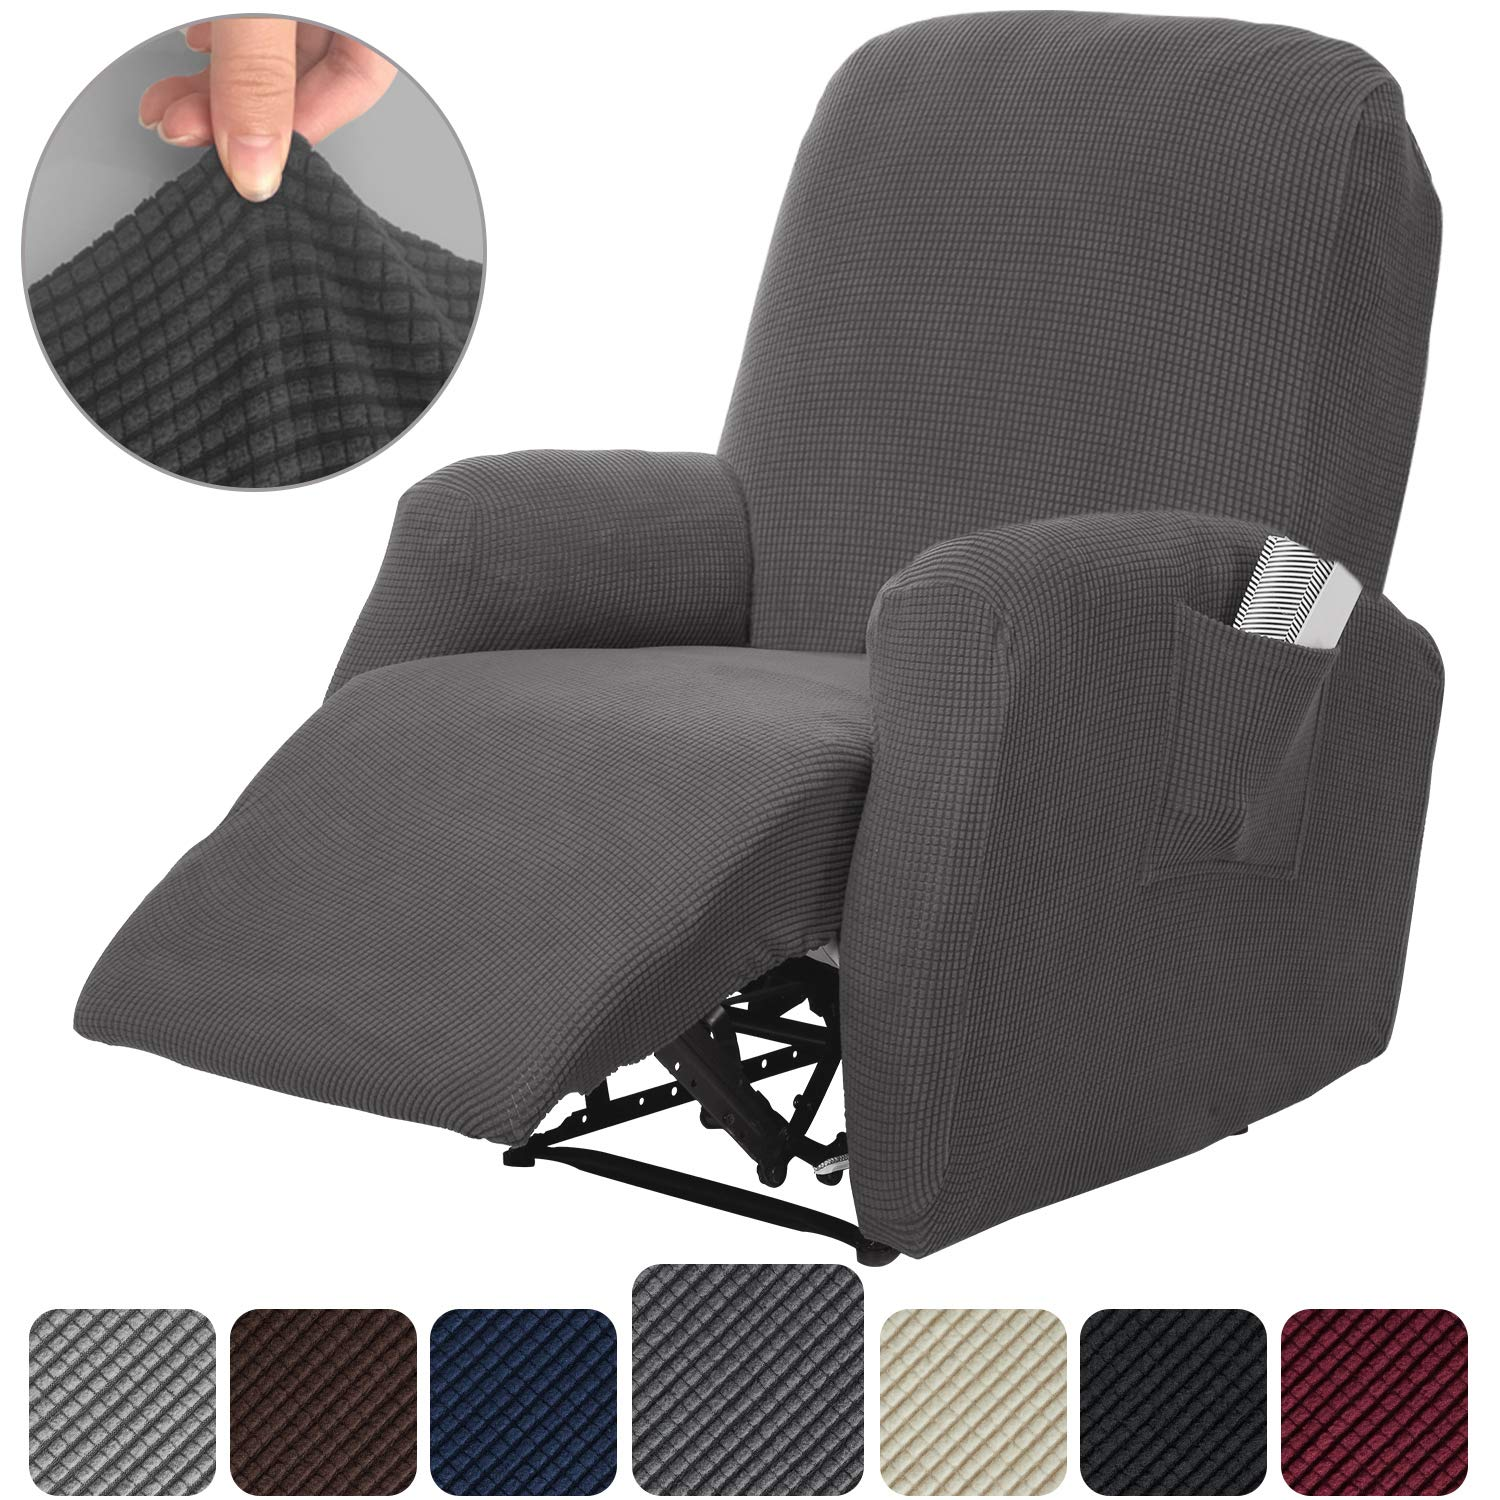 Rose Home Fashion RHF 4 Separate Piece Stretch Recliner Slipcovers, Recliner Chair Cover, Recliner Cover Furniture Protector Elastic Bottom, Recliner Slipcover with Side Pocket (Dark Grey-Recliner)